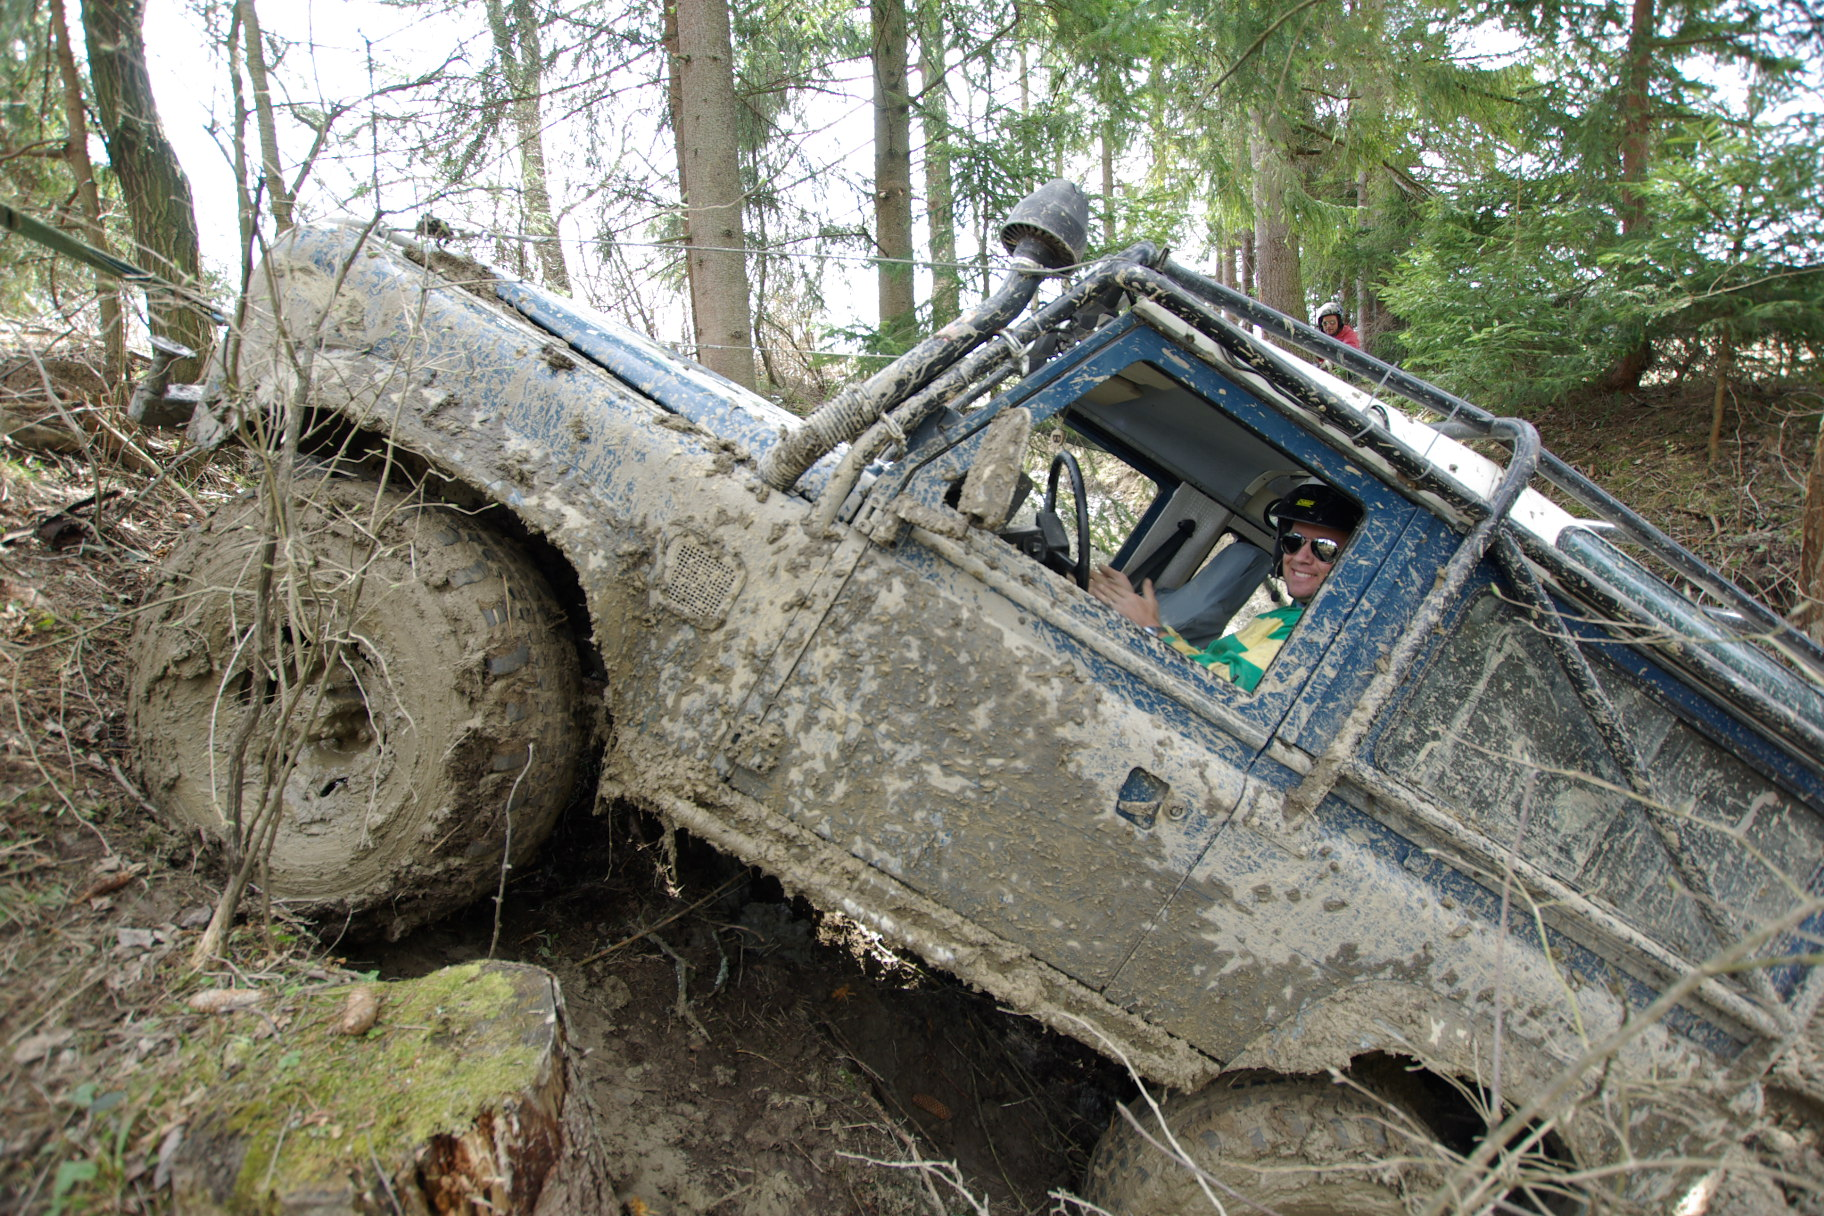 Taking part in extreme 4x4 competitions in Europe